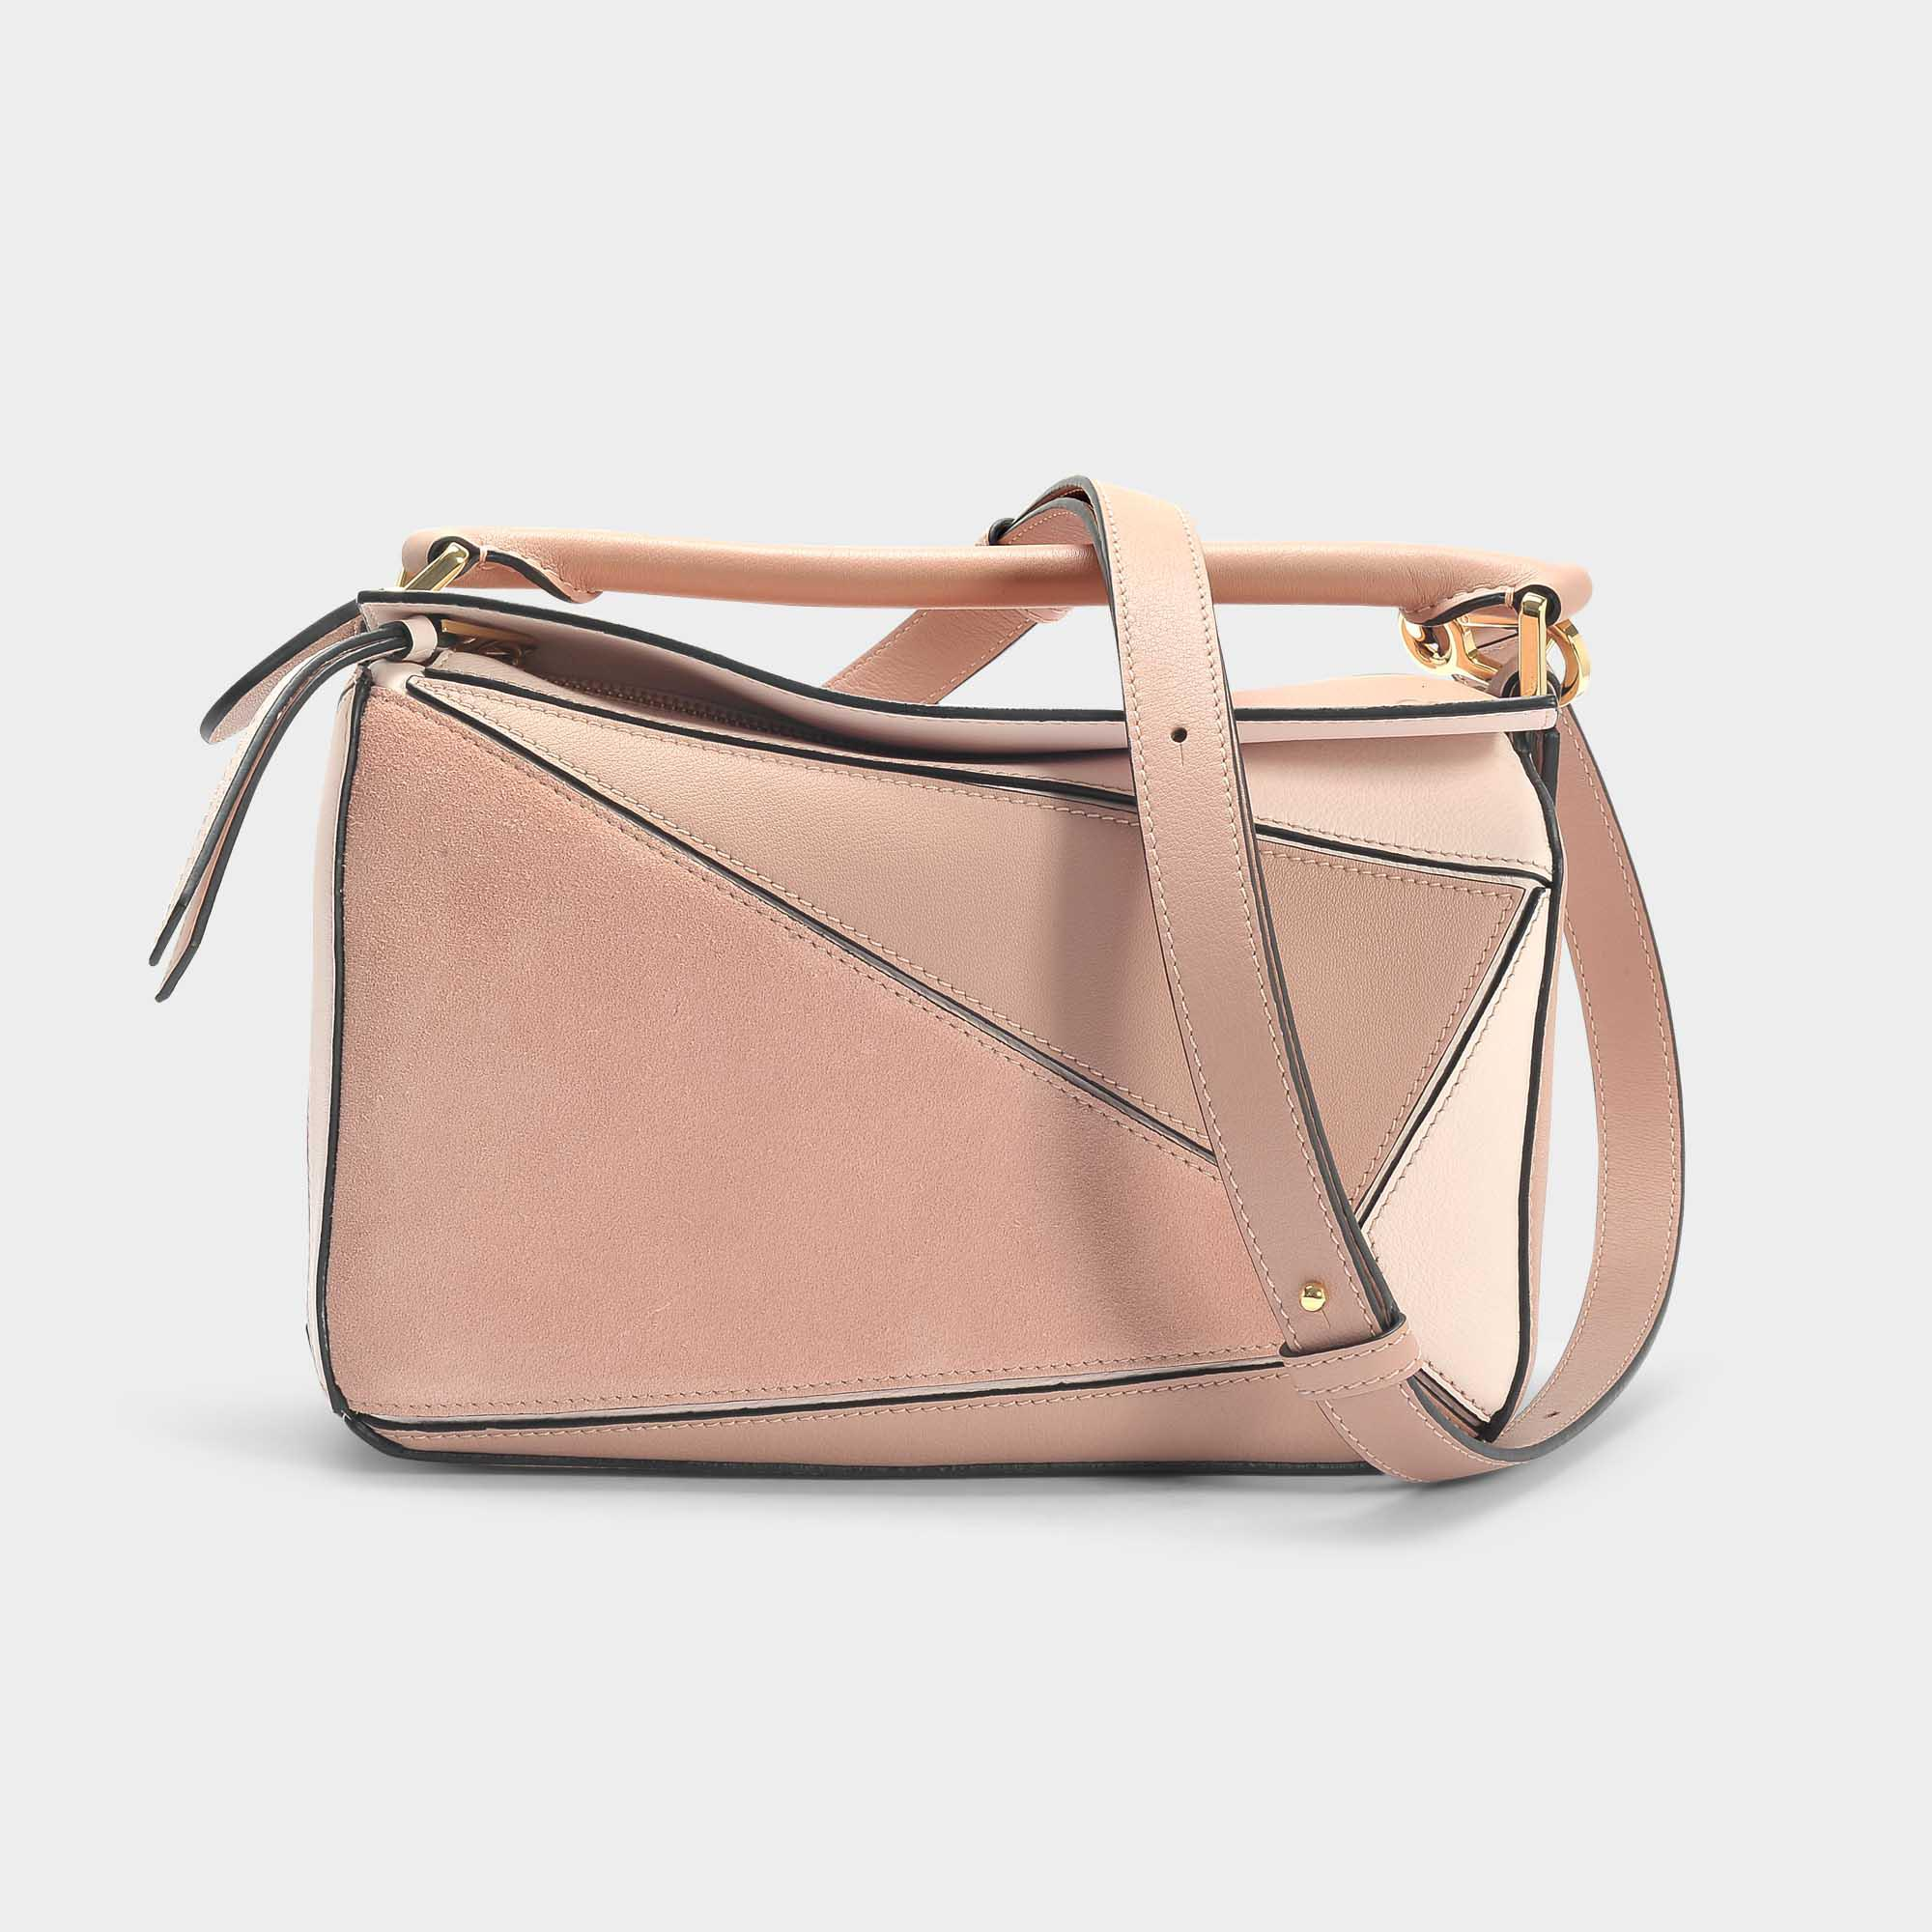 016d3279923c0 Loewe Puzzle Small Bag In Blush Multitone Suede And Classic Calfskin ...